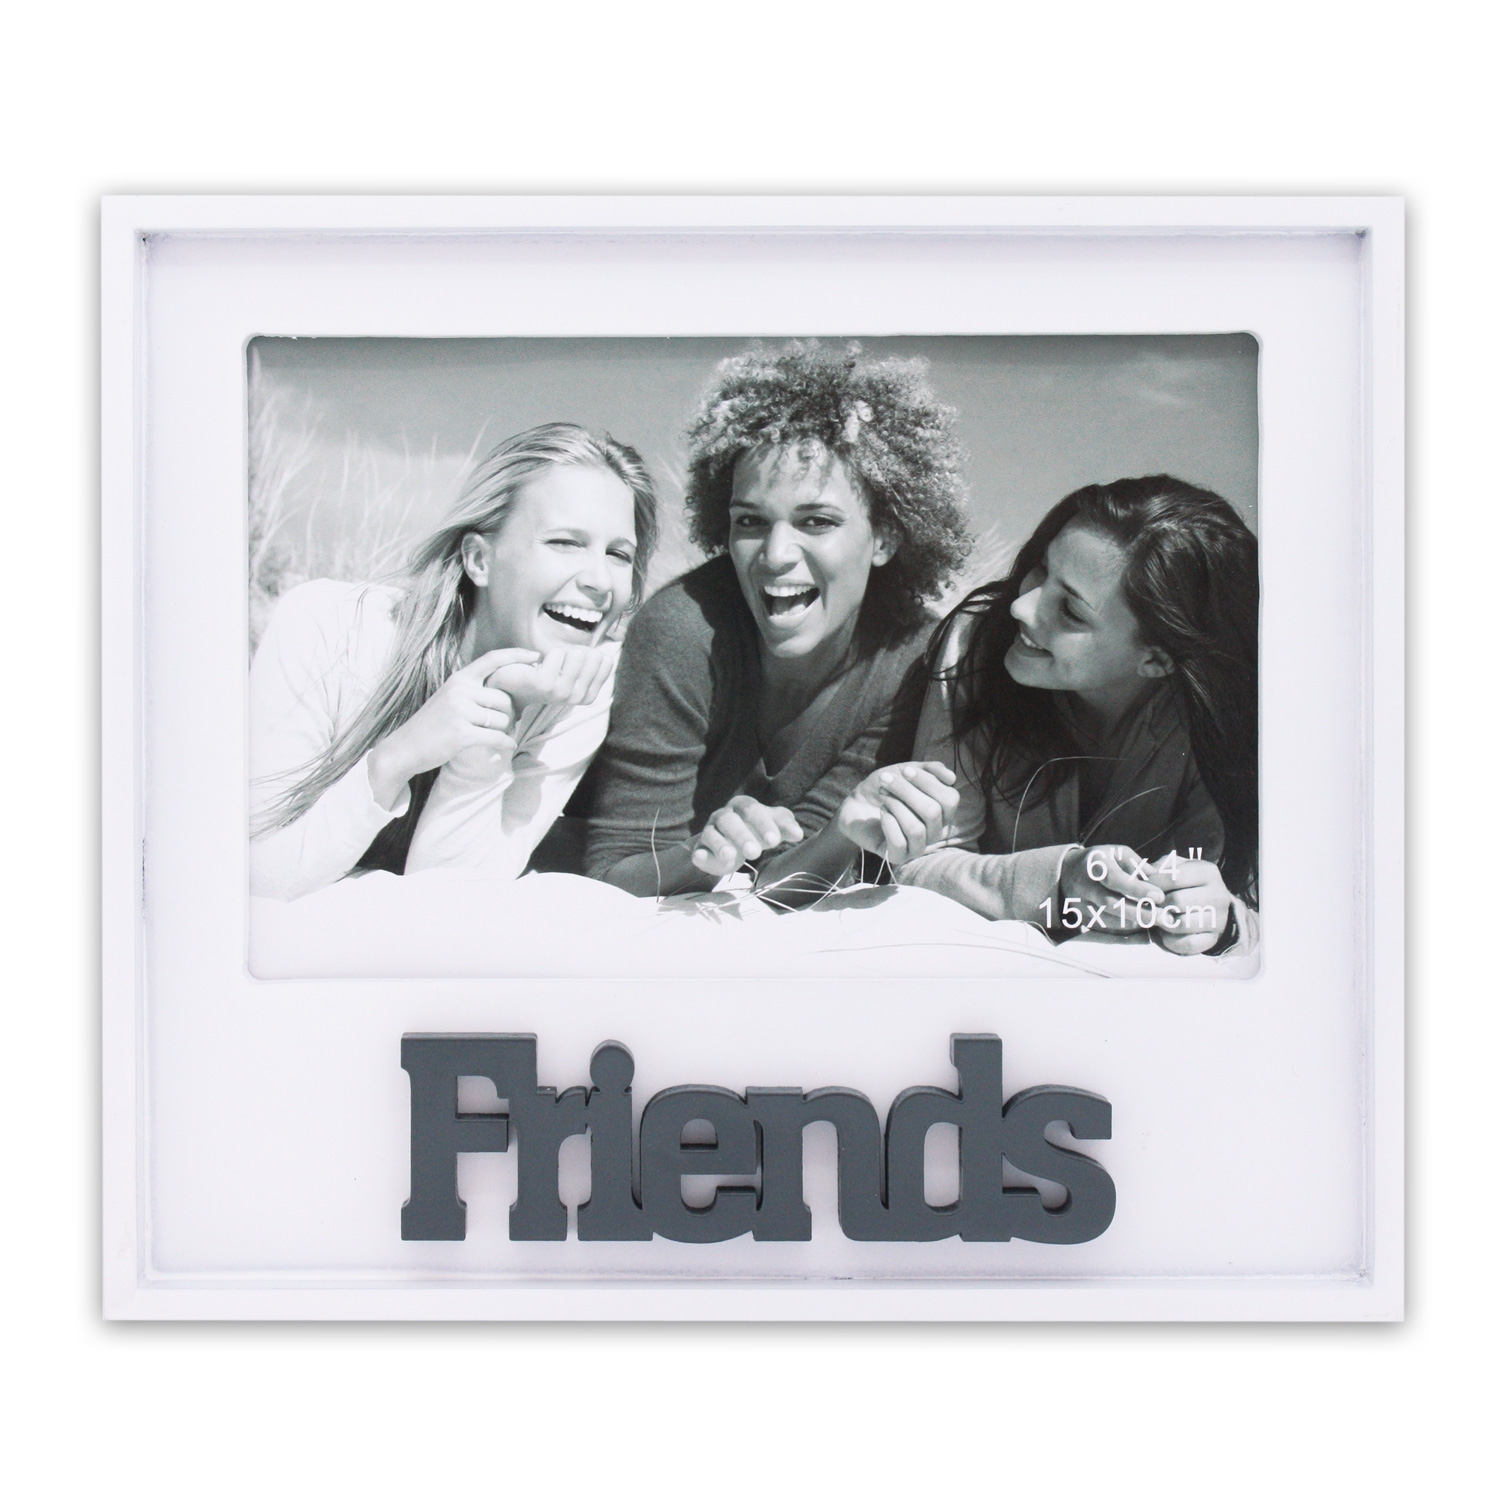 bilderrahmen fotorahmen fotohalter foto 10x15 cm friends family mum dad hund ebay. Black Bedroom Furniture Sets. Home Design Ideas